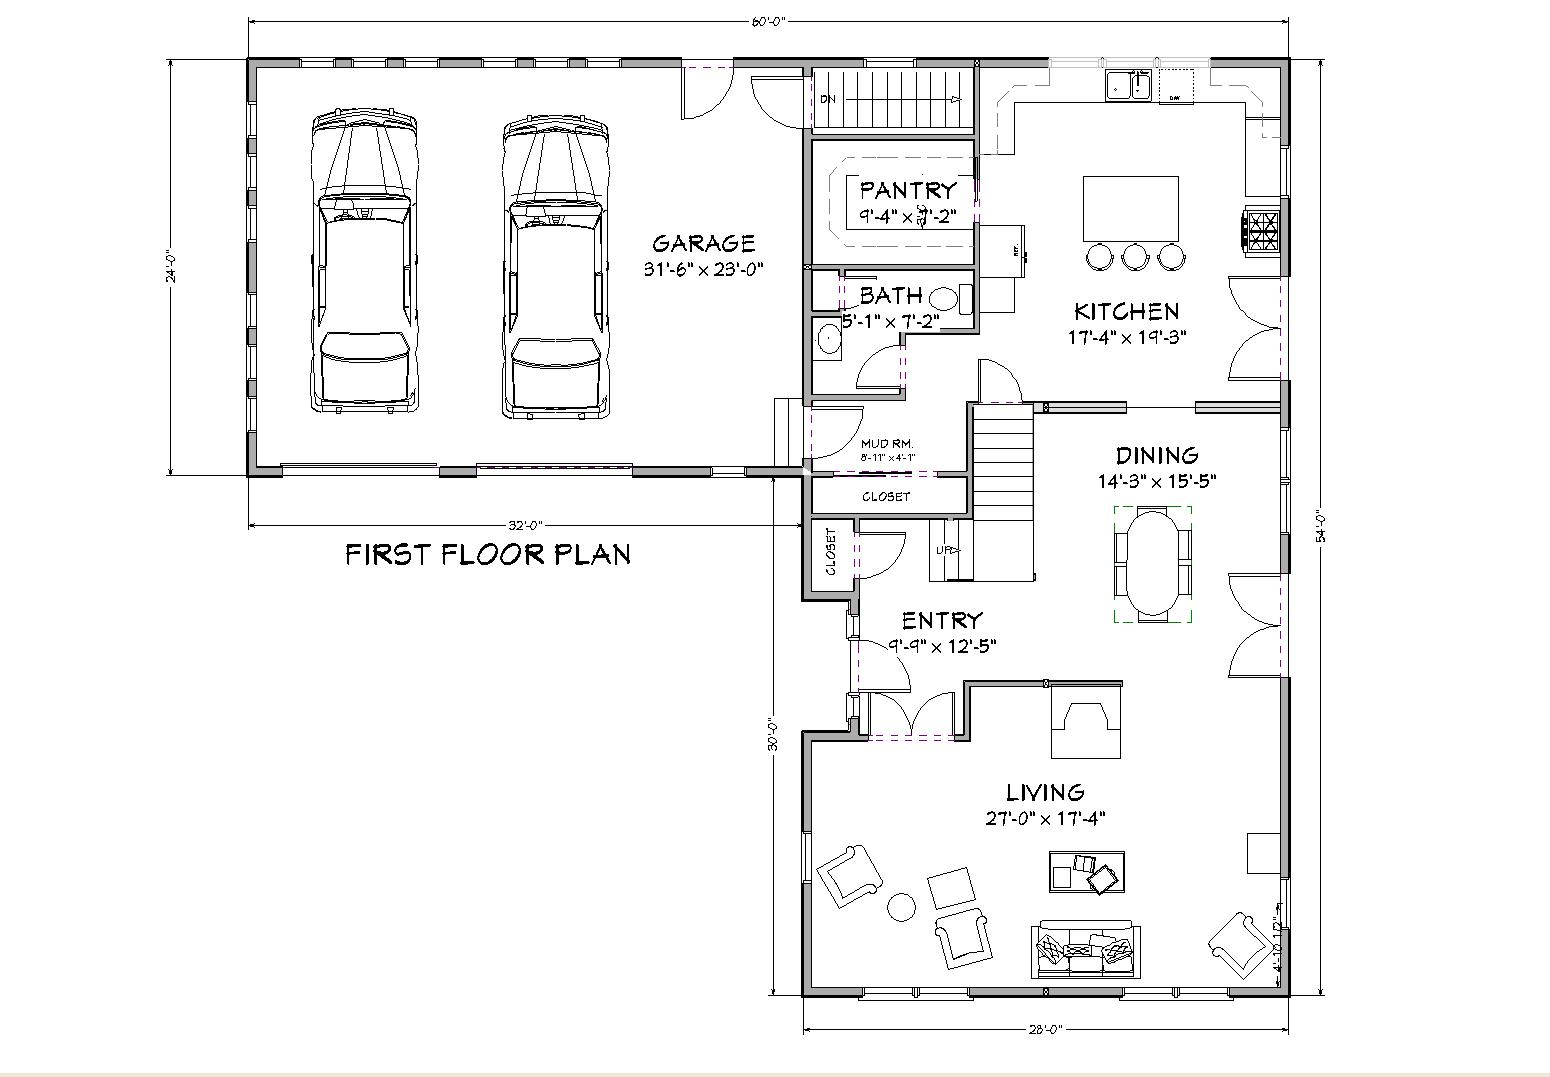 Cape cod house plan 3000 square foot house plan for 3000 sq ft apartment floor plan